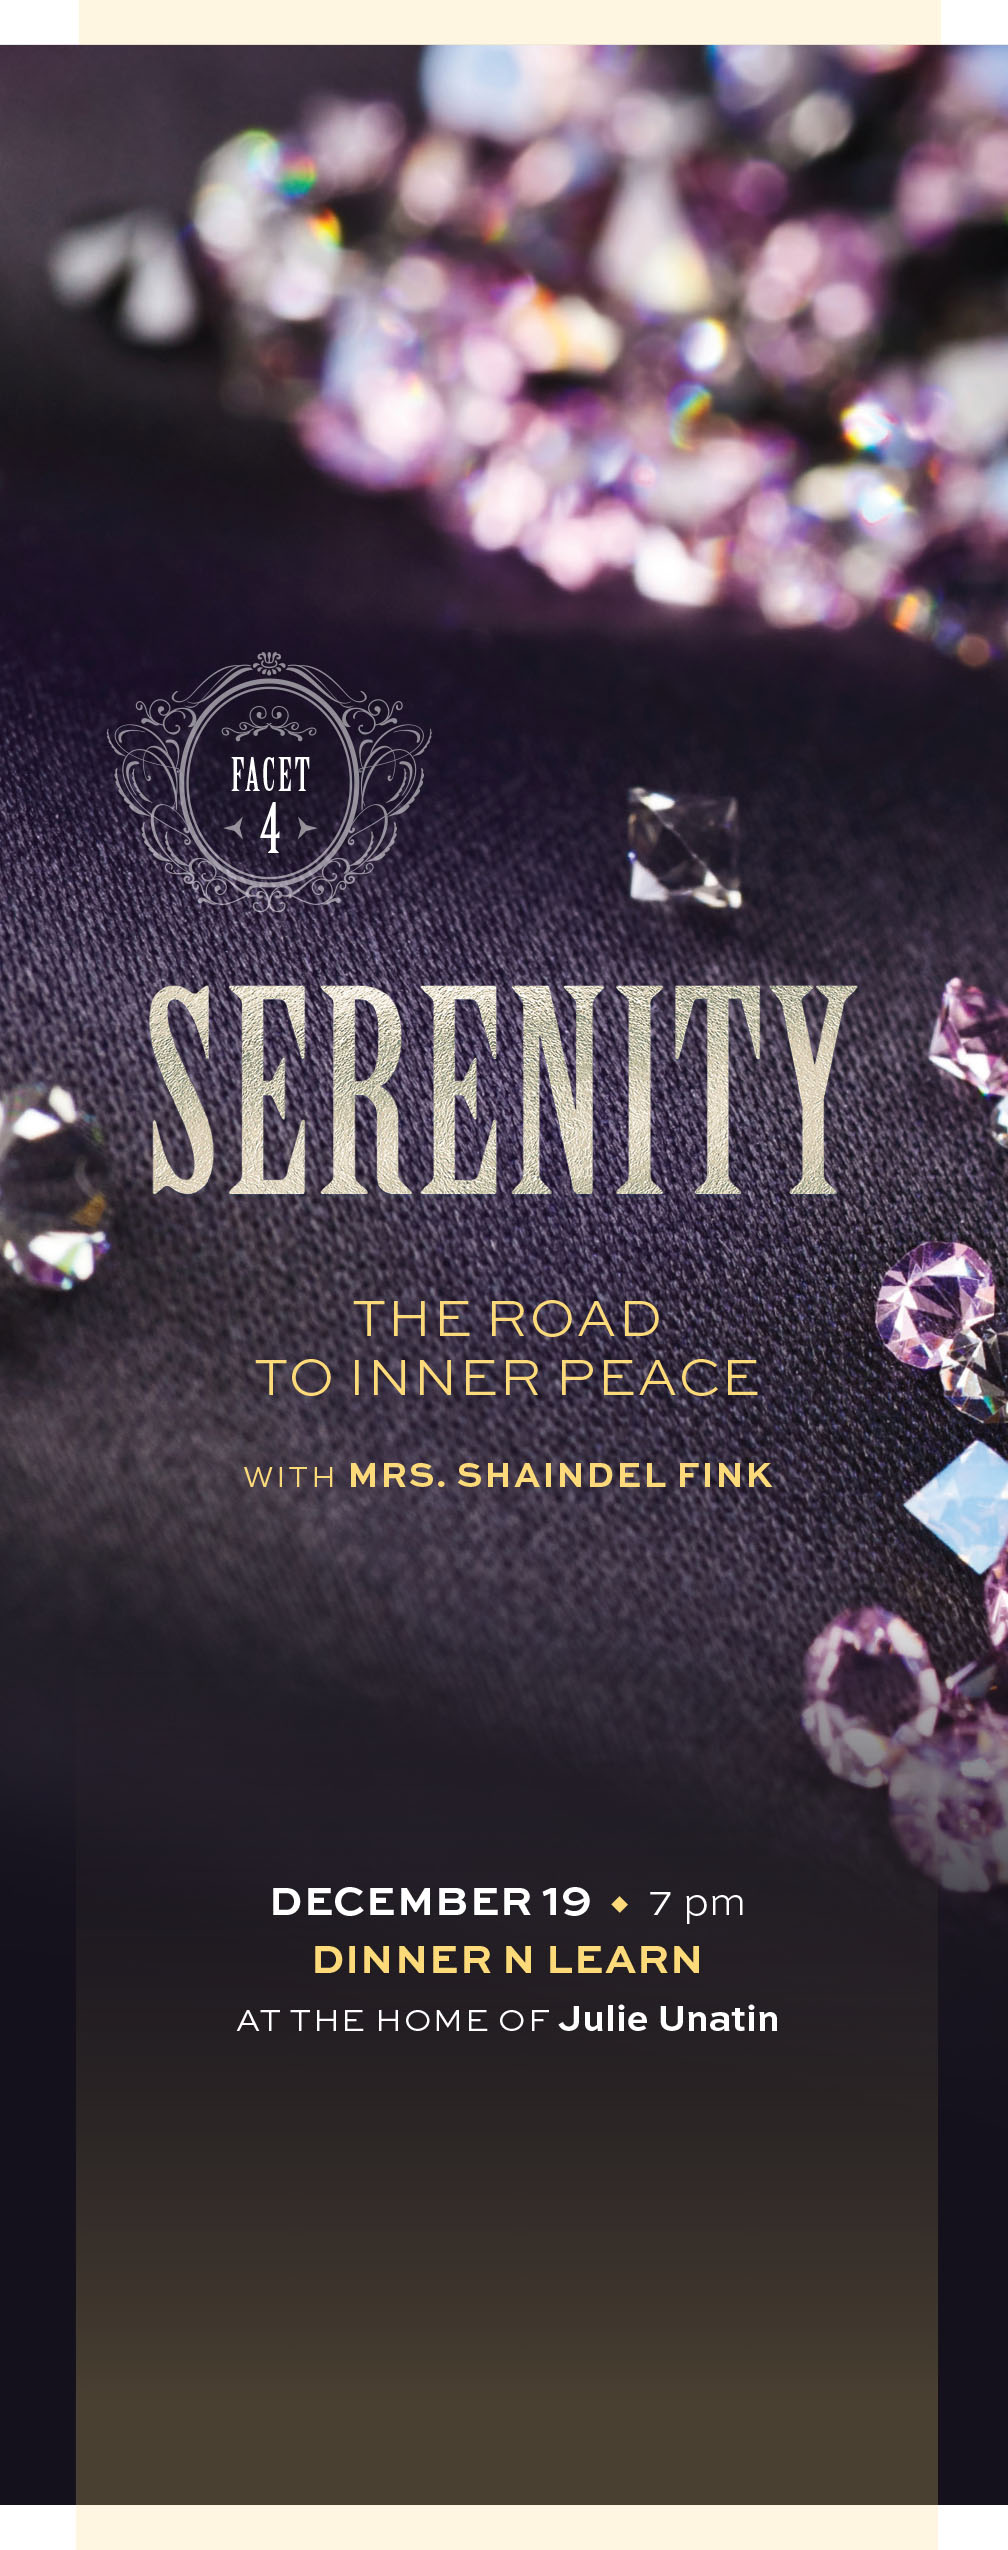 Facets - Serenity: The Road to Inner Peace Dinner 'n Learn